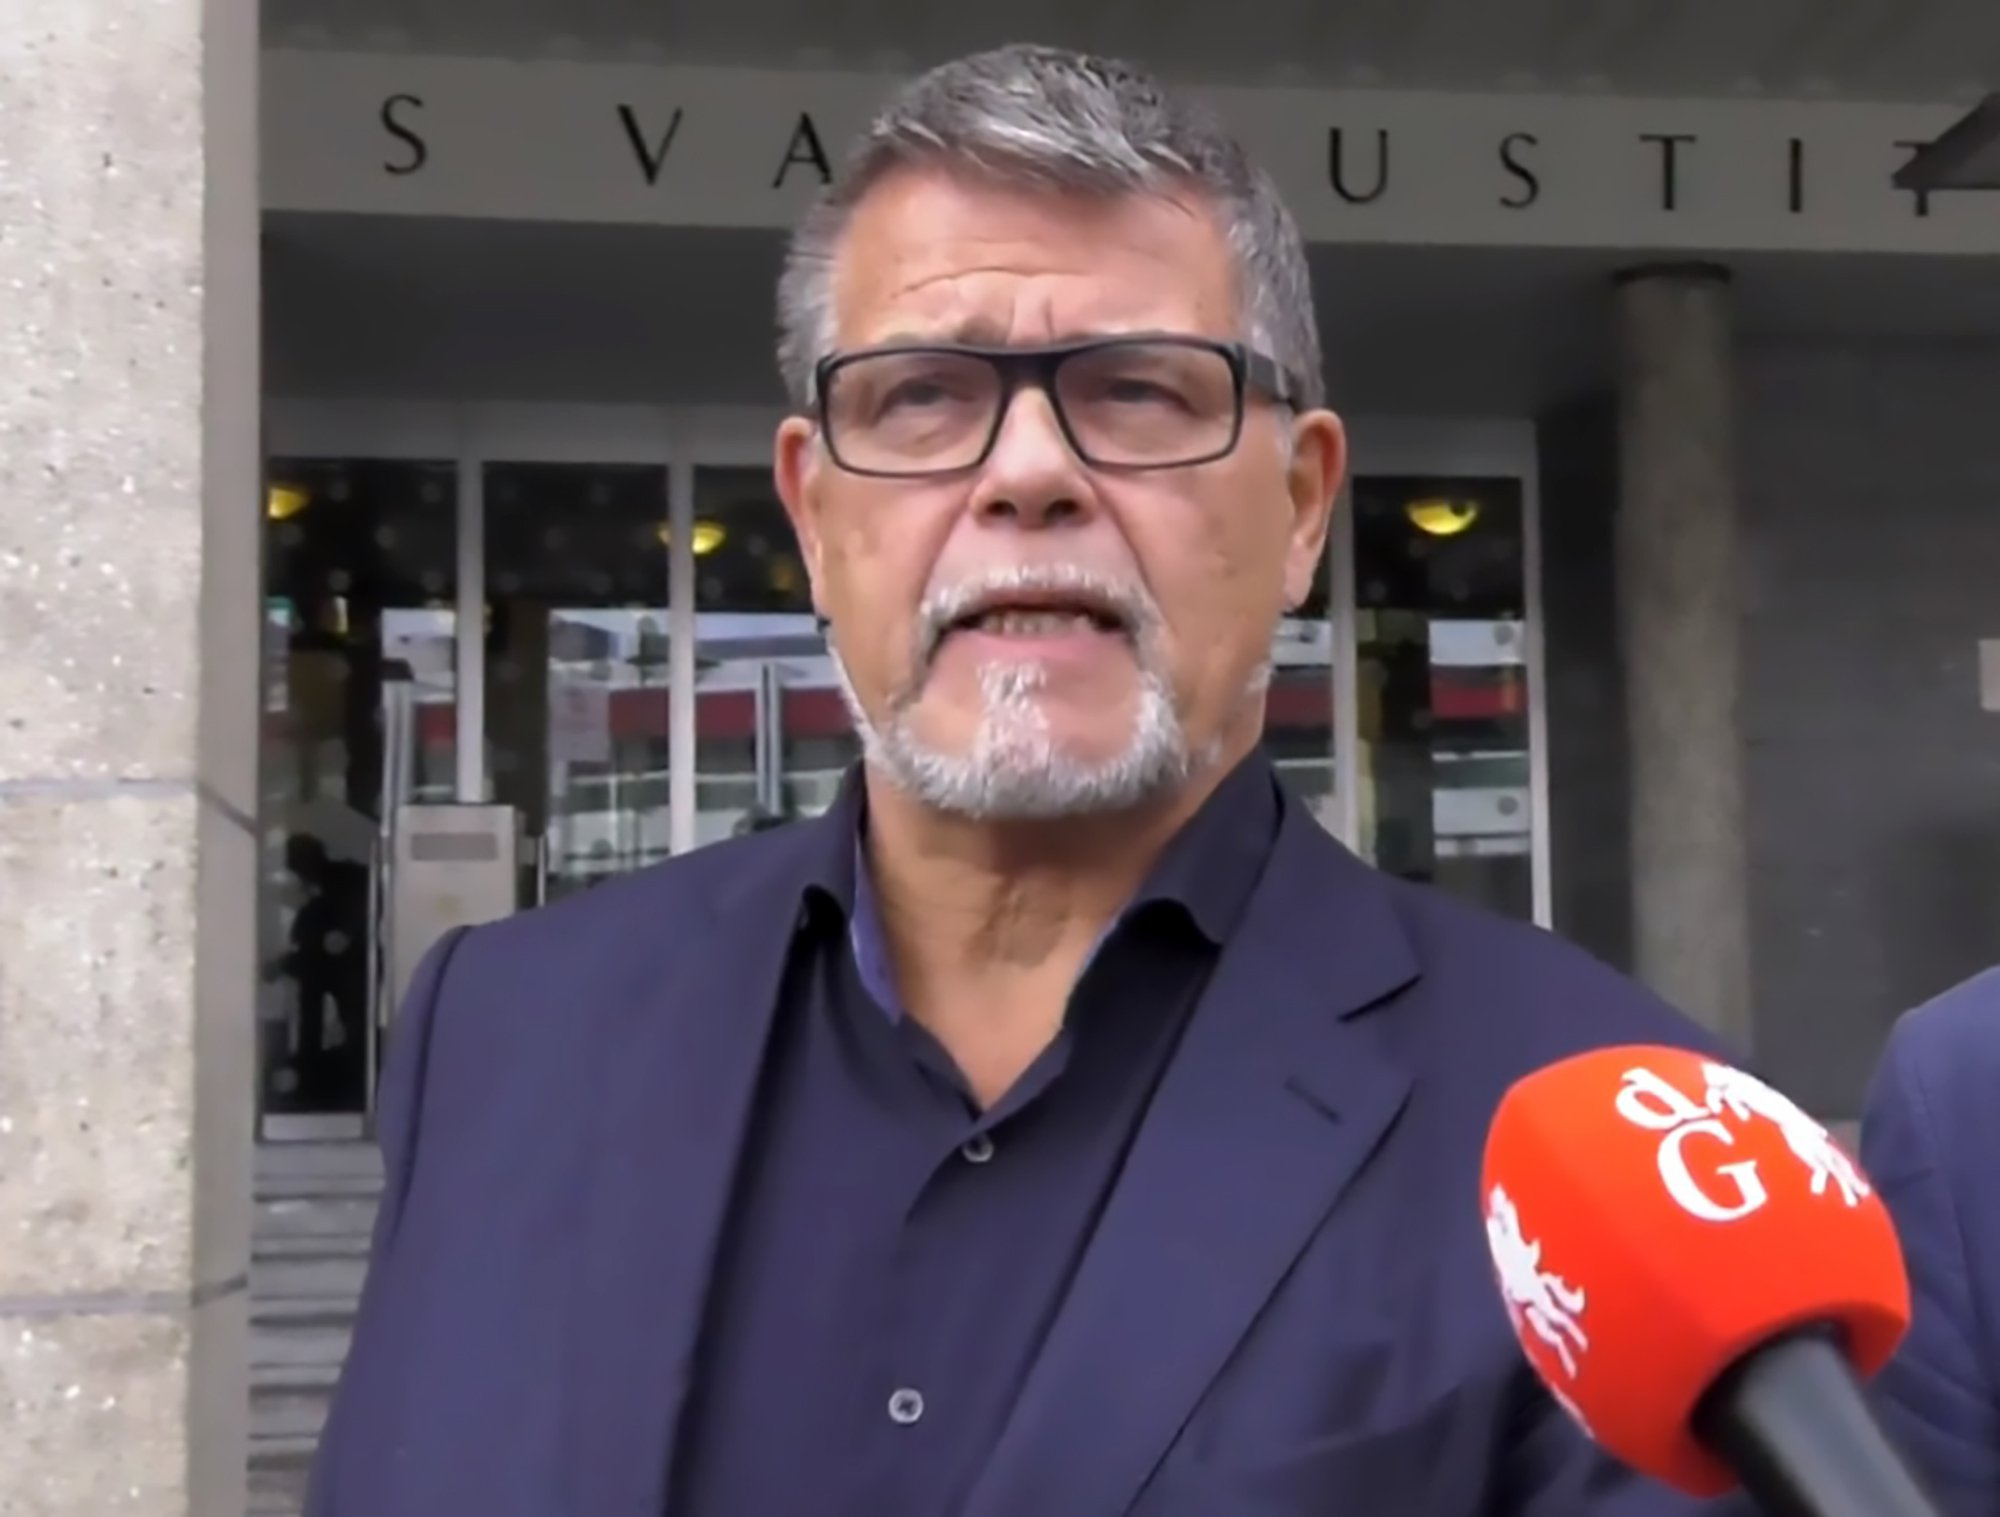 """Pic Shows: Emile Ratelband in front of the courthouse; A pensioner has begun a legal battle to be recognised as being 20 years younger than his actual age so he can go back to work and pull girls on Tinder. Emile Ratelband, 69, argues that if transgender people are allowed to change sex, he should be allowed to change his date of birth because doctors said he has the body of a 45-year-old. The entrepreneur and self-help guru is suing his local authority after they refused the amend his age on official documents. Mr Ratelband's case has now gone to a court in the city of Arnhmen in the eastern Dutch provice of Gelderland. He was born on 11th March 1949, but says he feels at least 20 years younger and wants to change his birth date to 11th March 1969. Mr Ratelband said: """"I have done a check-up and what does it show? My biological age is 45 years. """"When I'm 69, I am limited. If I'm 49, then I can buy a new house, drive a different car. I can take up more work. """"When I'm on Tinder and it say I'm 69, I don't get an answer. When I'm 49, with the face I have, I will be in a luxurious position. """"Transgenders can now have their gender changed on their birth certificate, and in the same spirit there should be room for an age change."""" The Dutchman said he is discriminated against because of his age, and that he encounters problems in society on a daily basis. He complains that companies are reluctant to hire someone the age of a pensioner as a consultant. And he says his move would also be good news for the government as he would be renouncing his pension until he reaches retirement age again. The judge said that he had some sympathy with Mr Ratelband as people could now change their gender which would once have been unthinkable. But the court said there would be practical problems in allowing people to change their birth date - as it would mean legally deleting part of their lives The judge asked Mr Ratelband about the status of his early years, from 1949 to 19"""